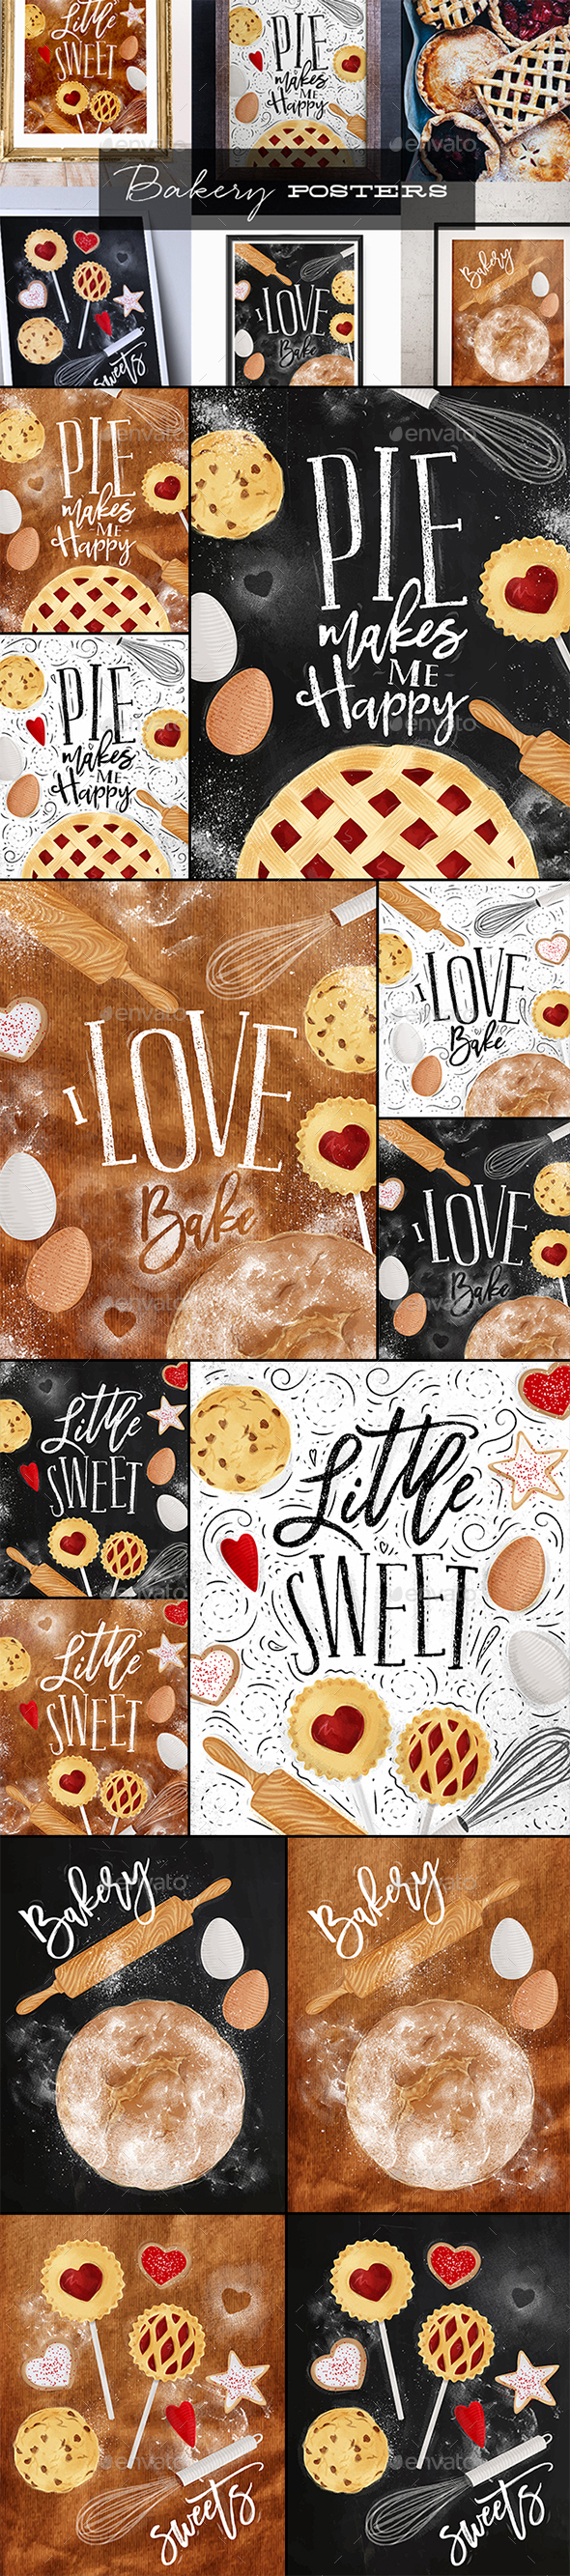 Bakery Posters - Food Objects